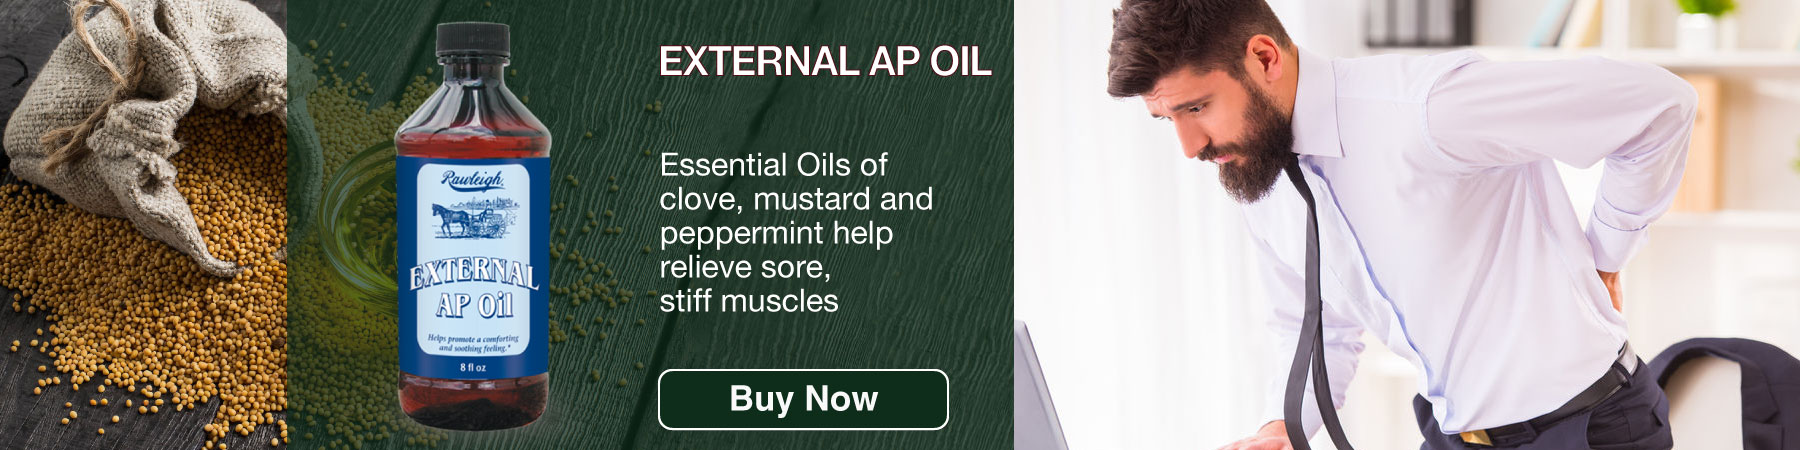 External AP Oil